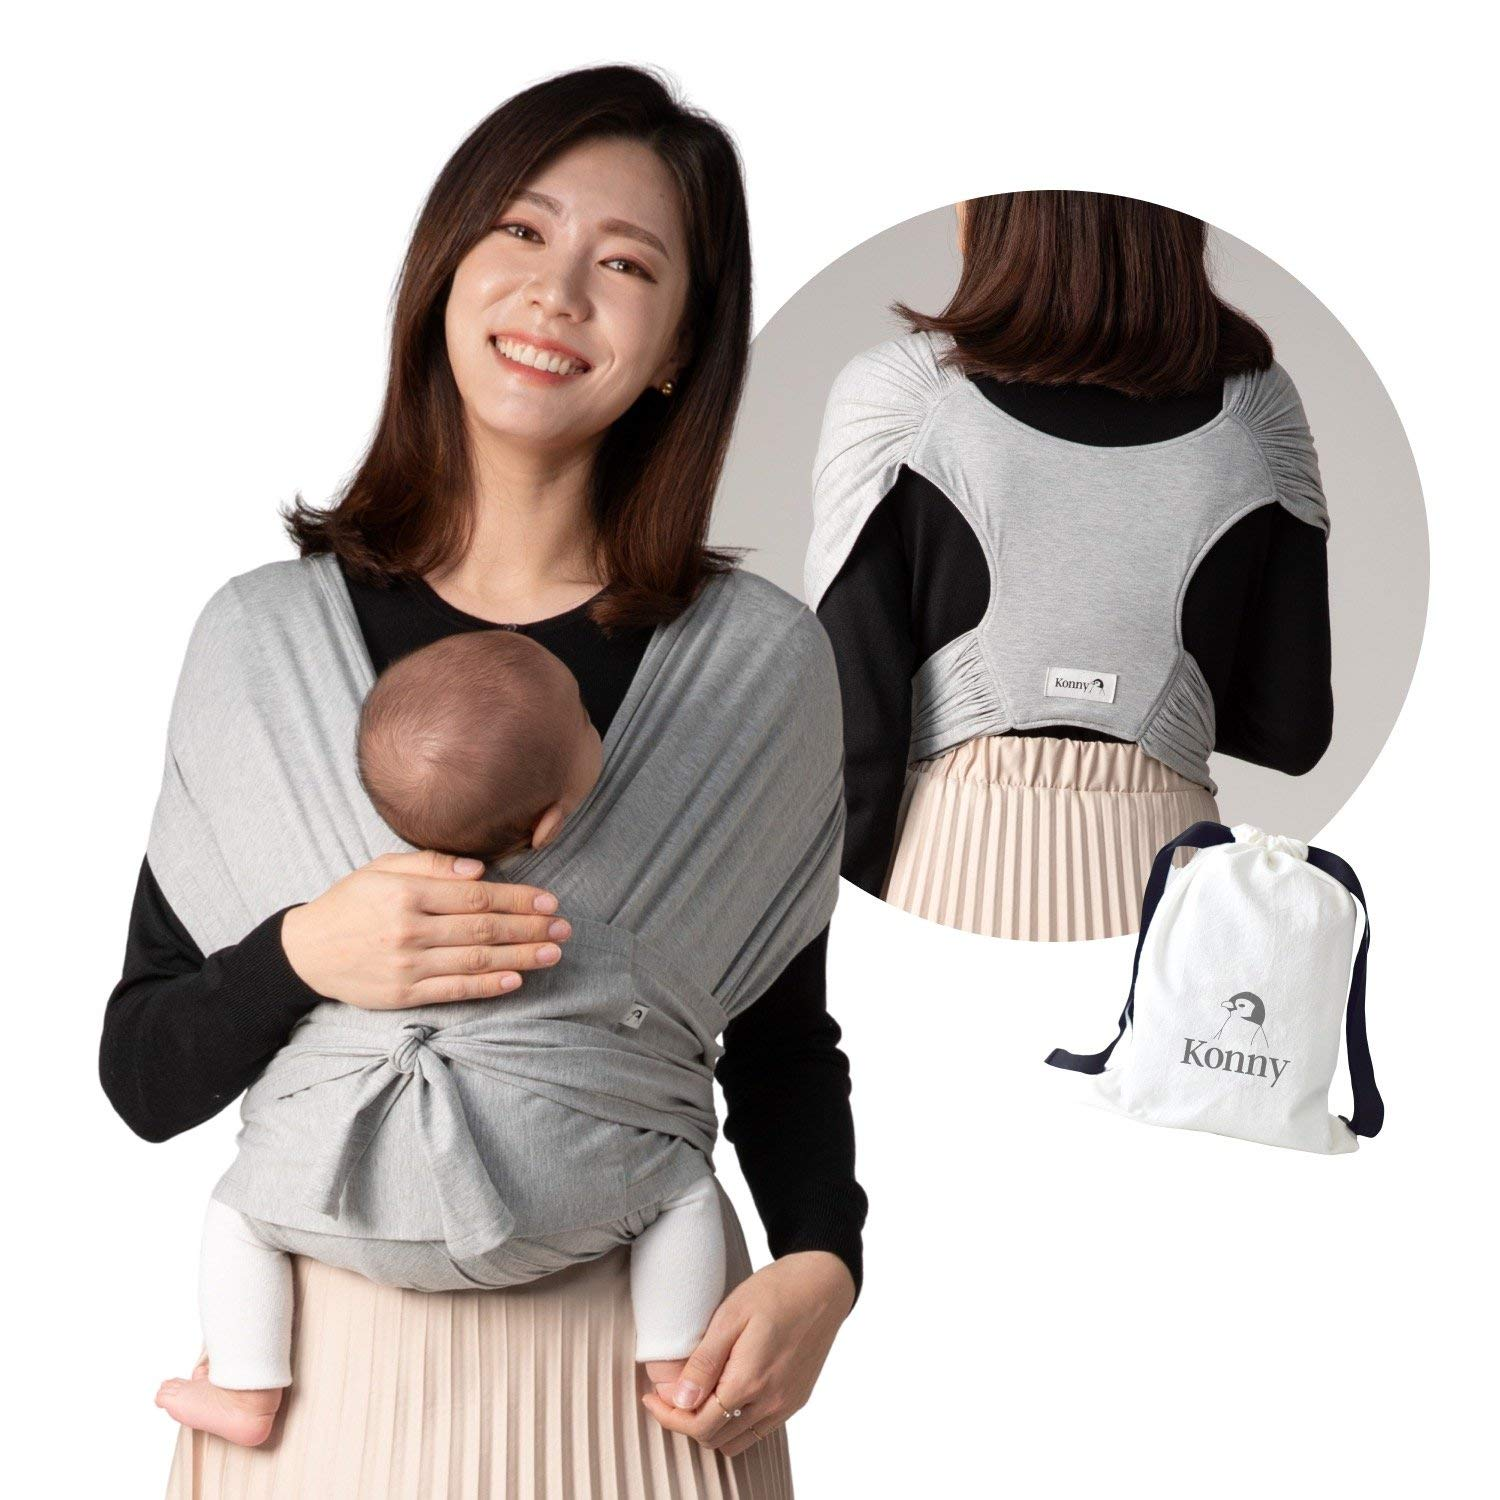 Konny Baby Carrier price Ultra-Lightweight Large-scale sale Sl Wrap Hassle-Free